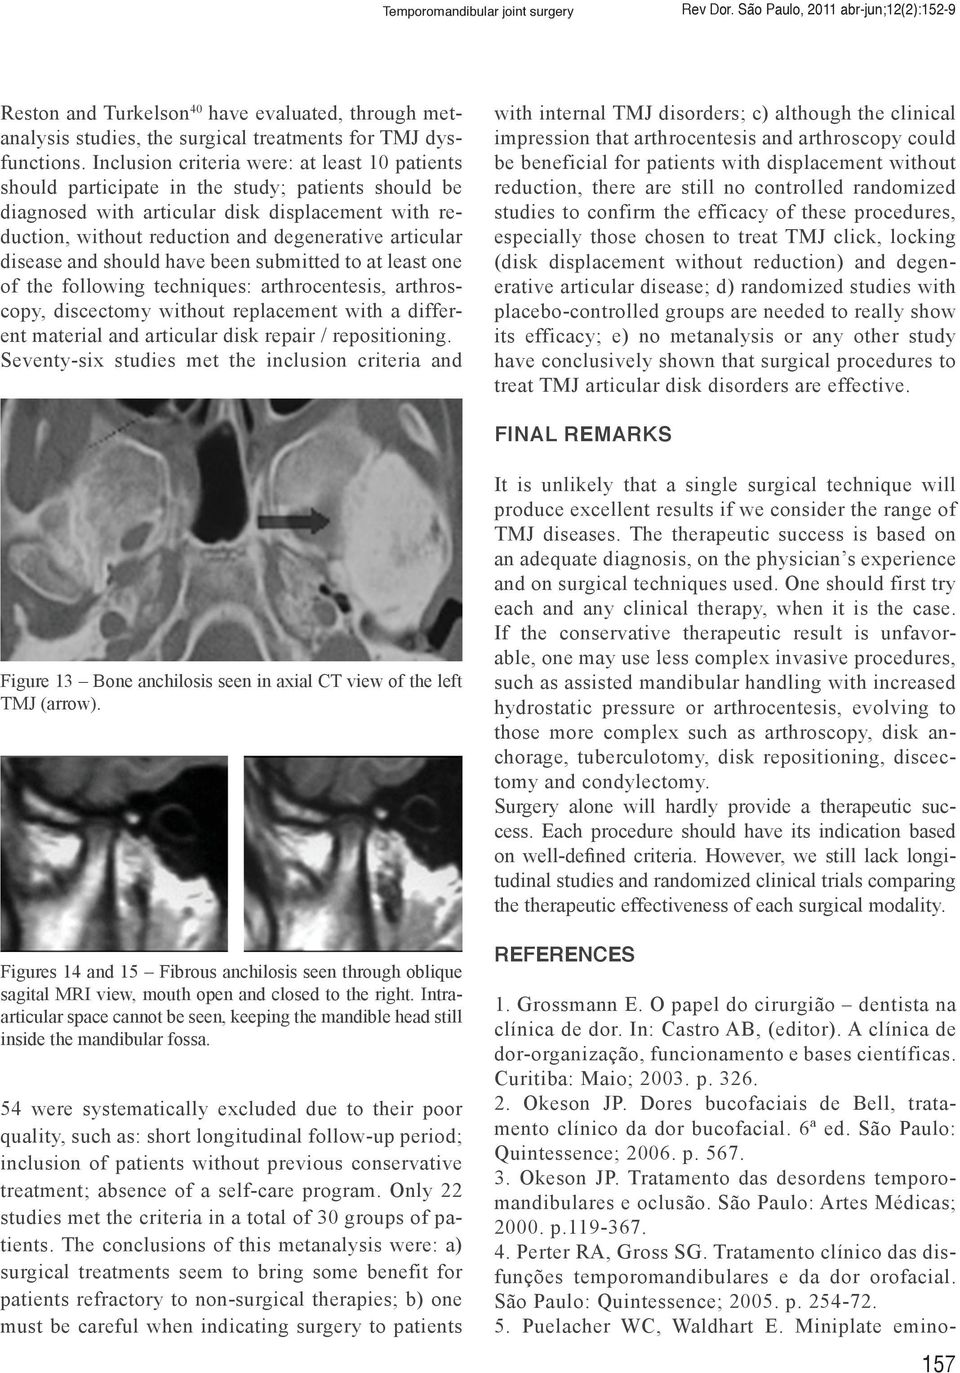 Temporomandibular joint surgery pdf articular disease and should have been submitted to at least one of the following techniques fandeluxe Images